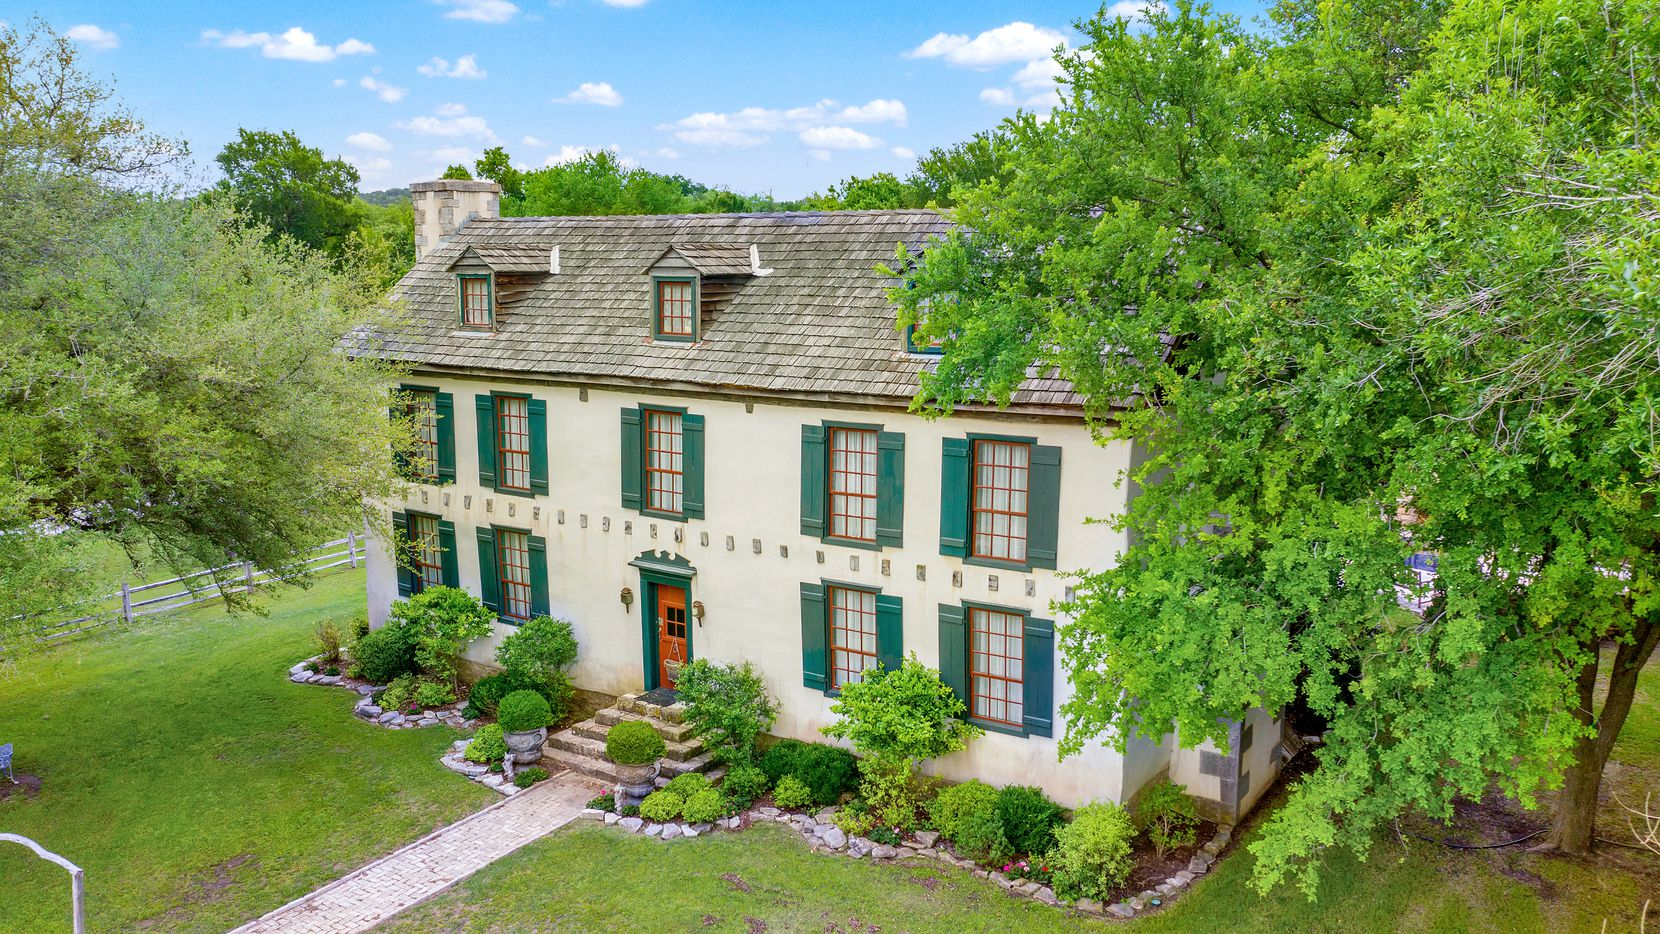 Take a look at Settlers Crossing, a historic bed-and-breakfast on the market in Fredericksburg.